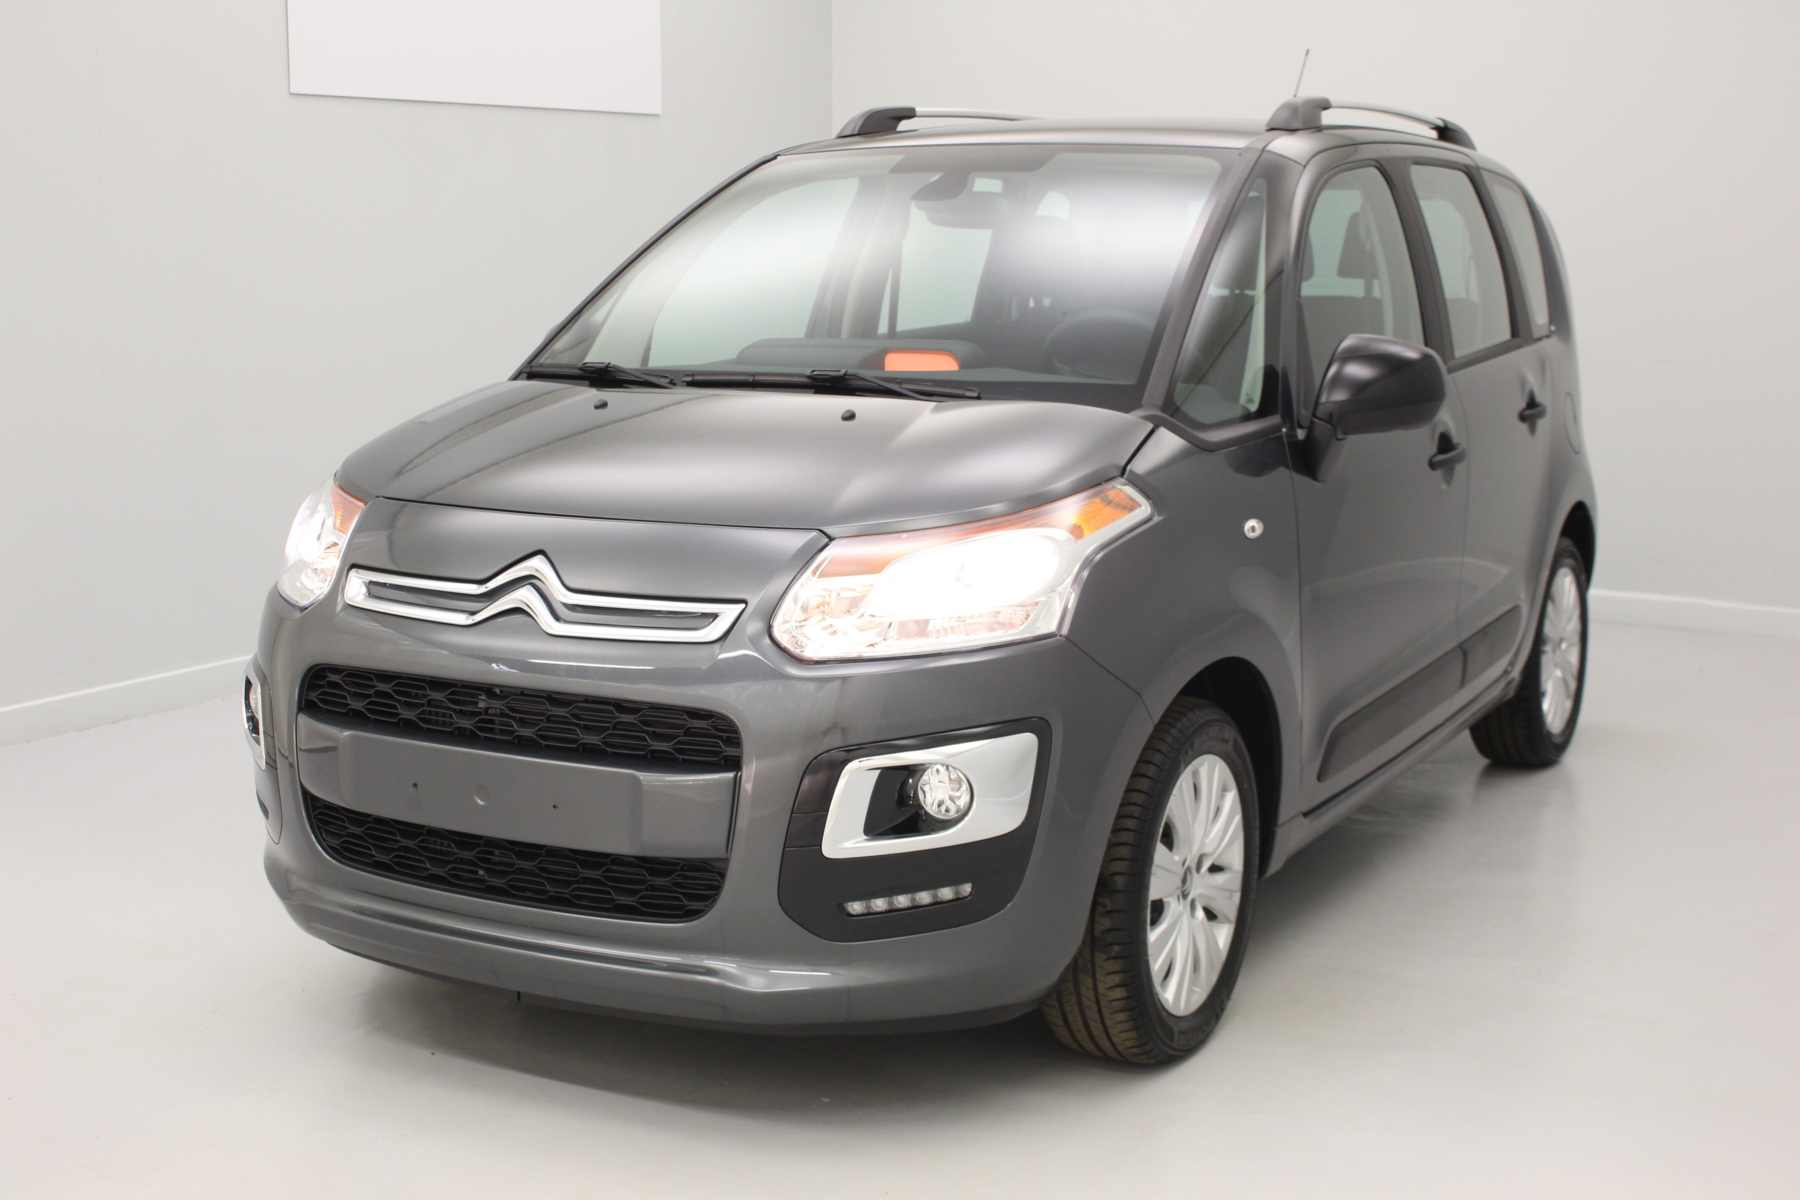 CITROEN C3 Picasso BlueHDi 100 Confort Gris Shark +Pack urbain avec options